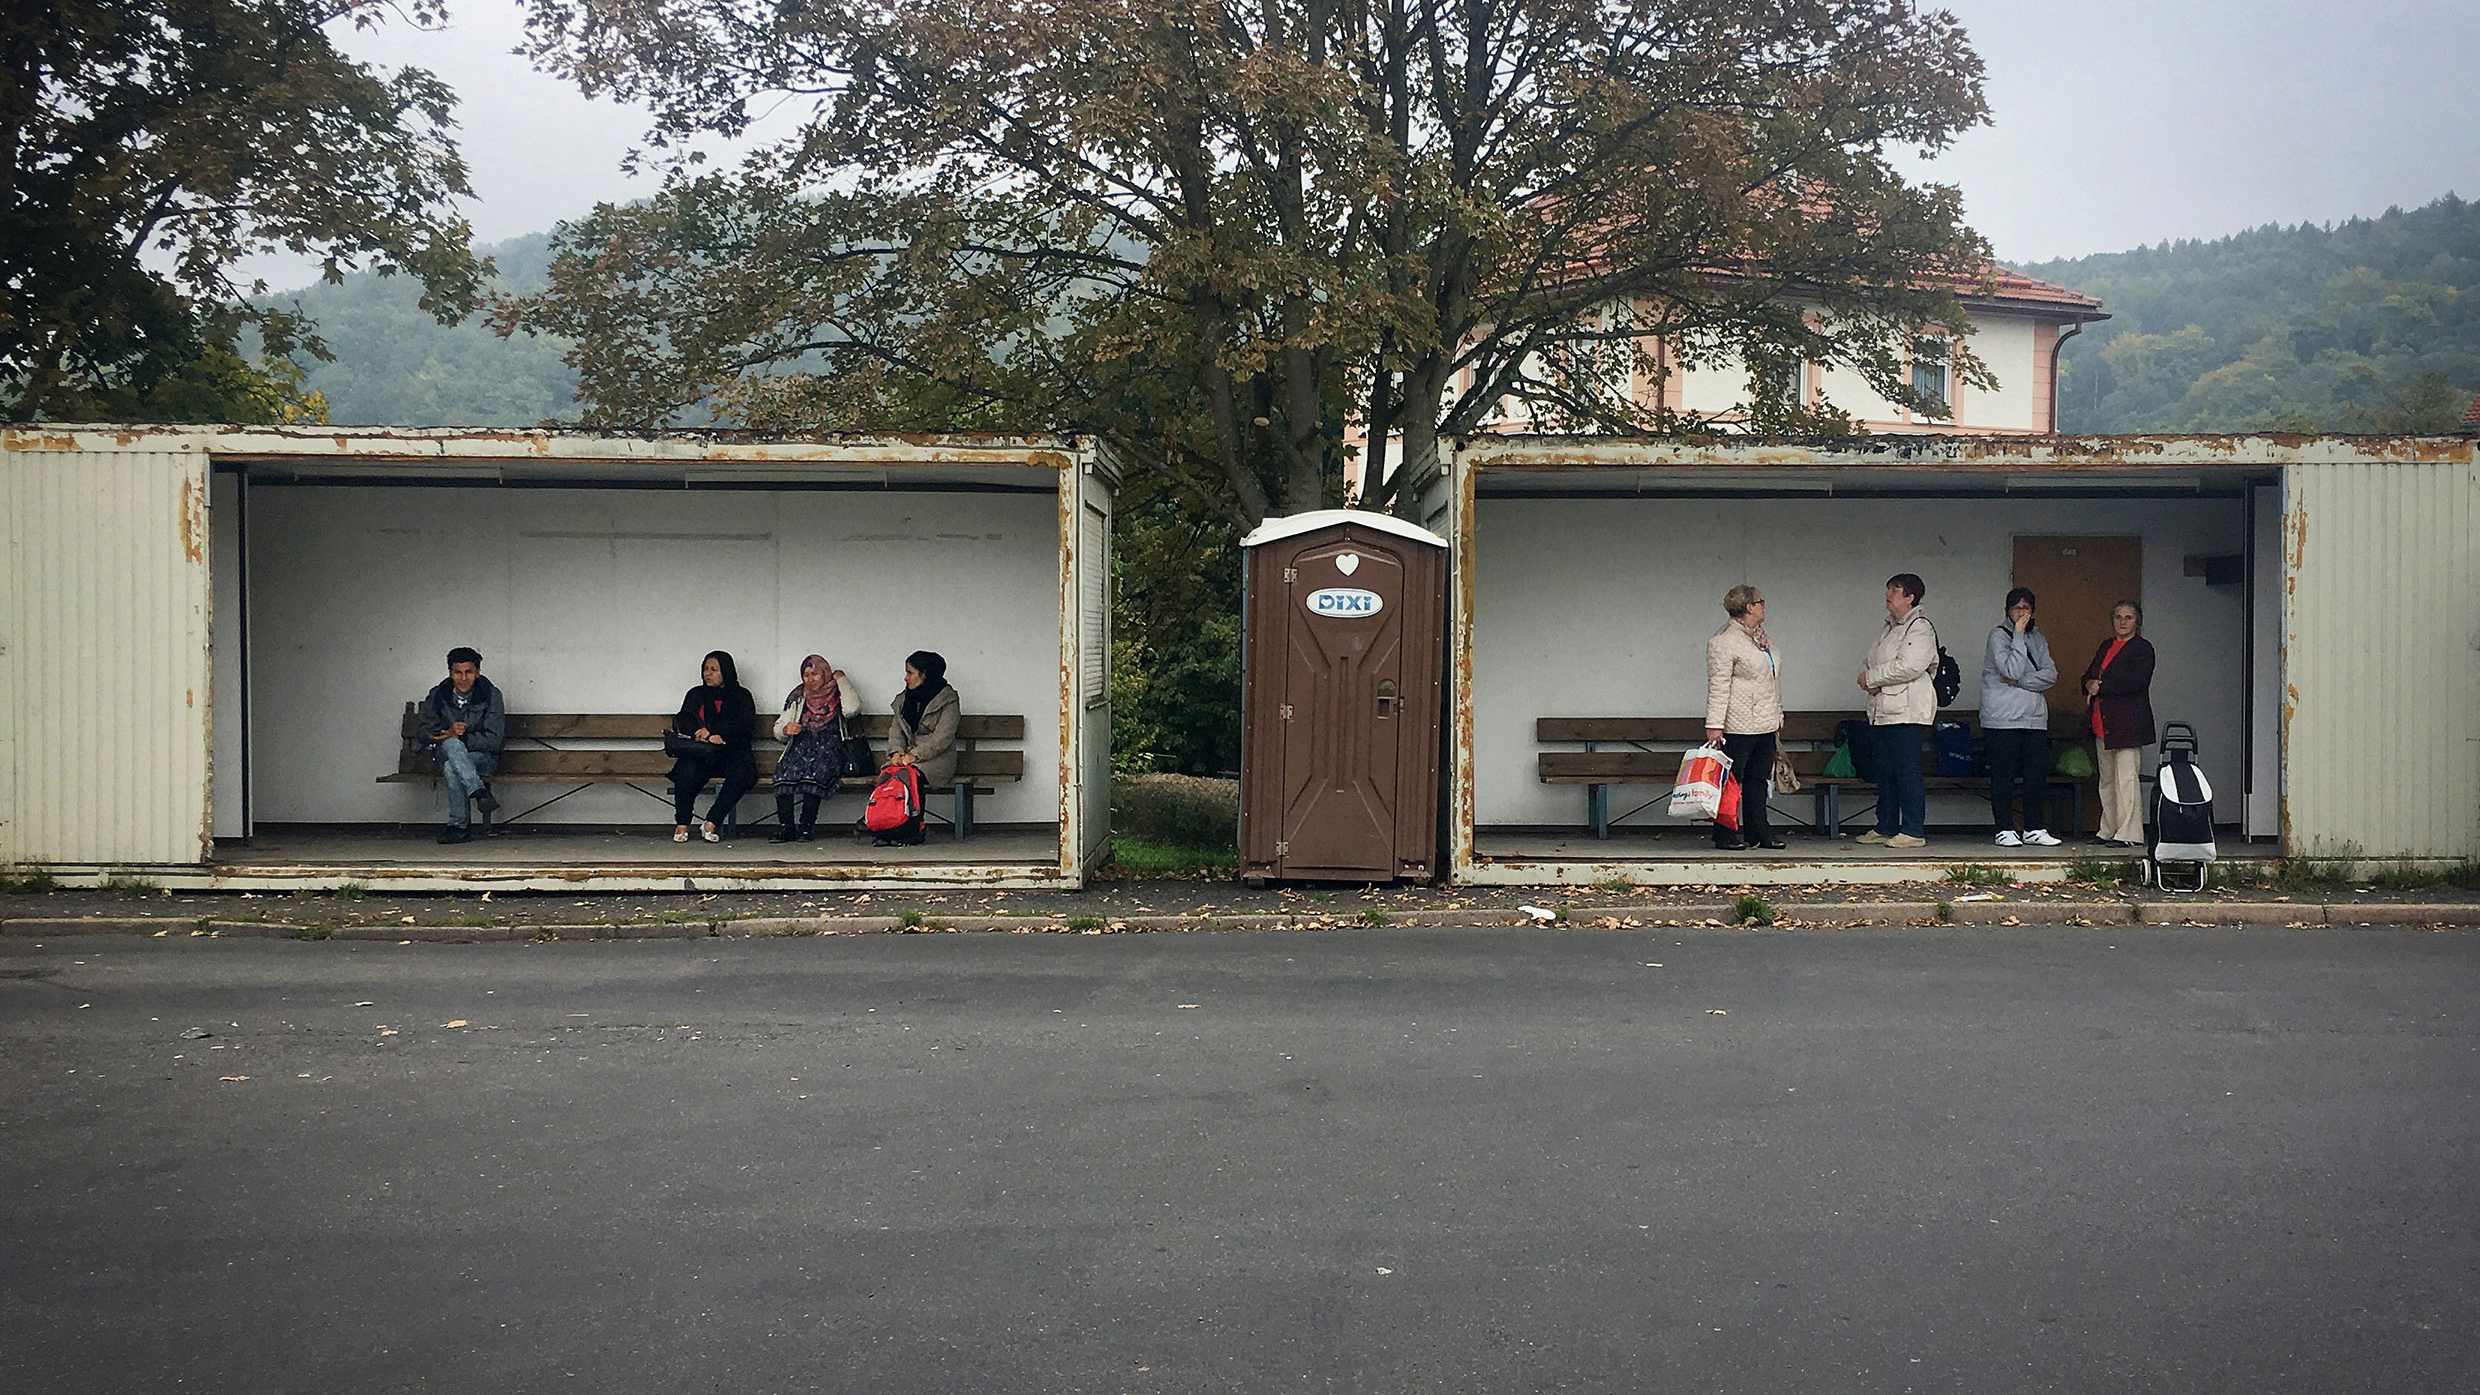 Germany before the General Elections: Citizens from Sonneberg in Thuringia waiting for a bus next to Syrian refugees. Photo by Michael Klug.